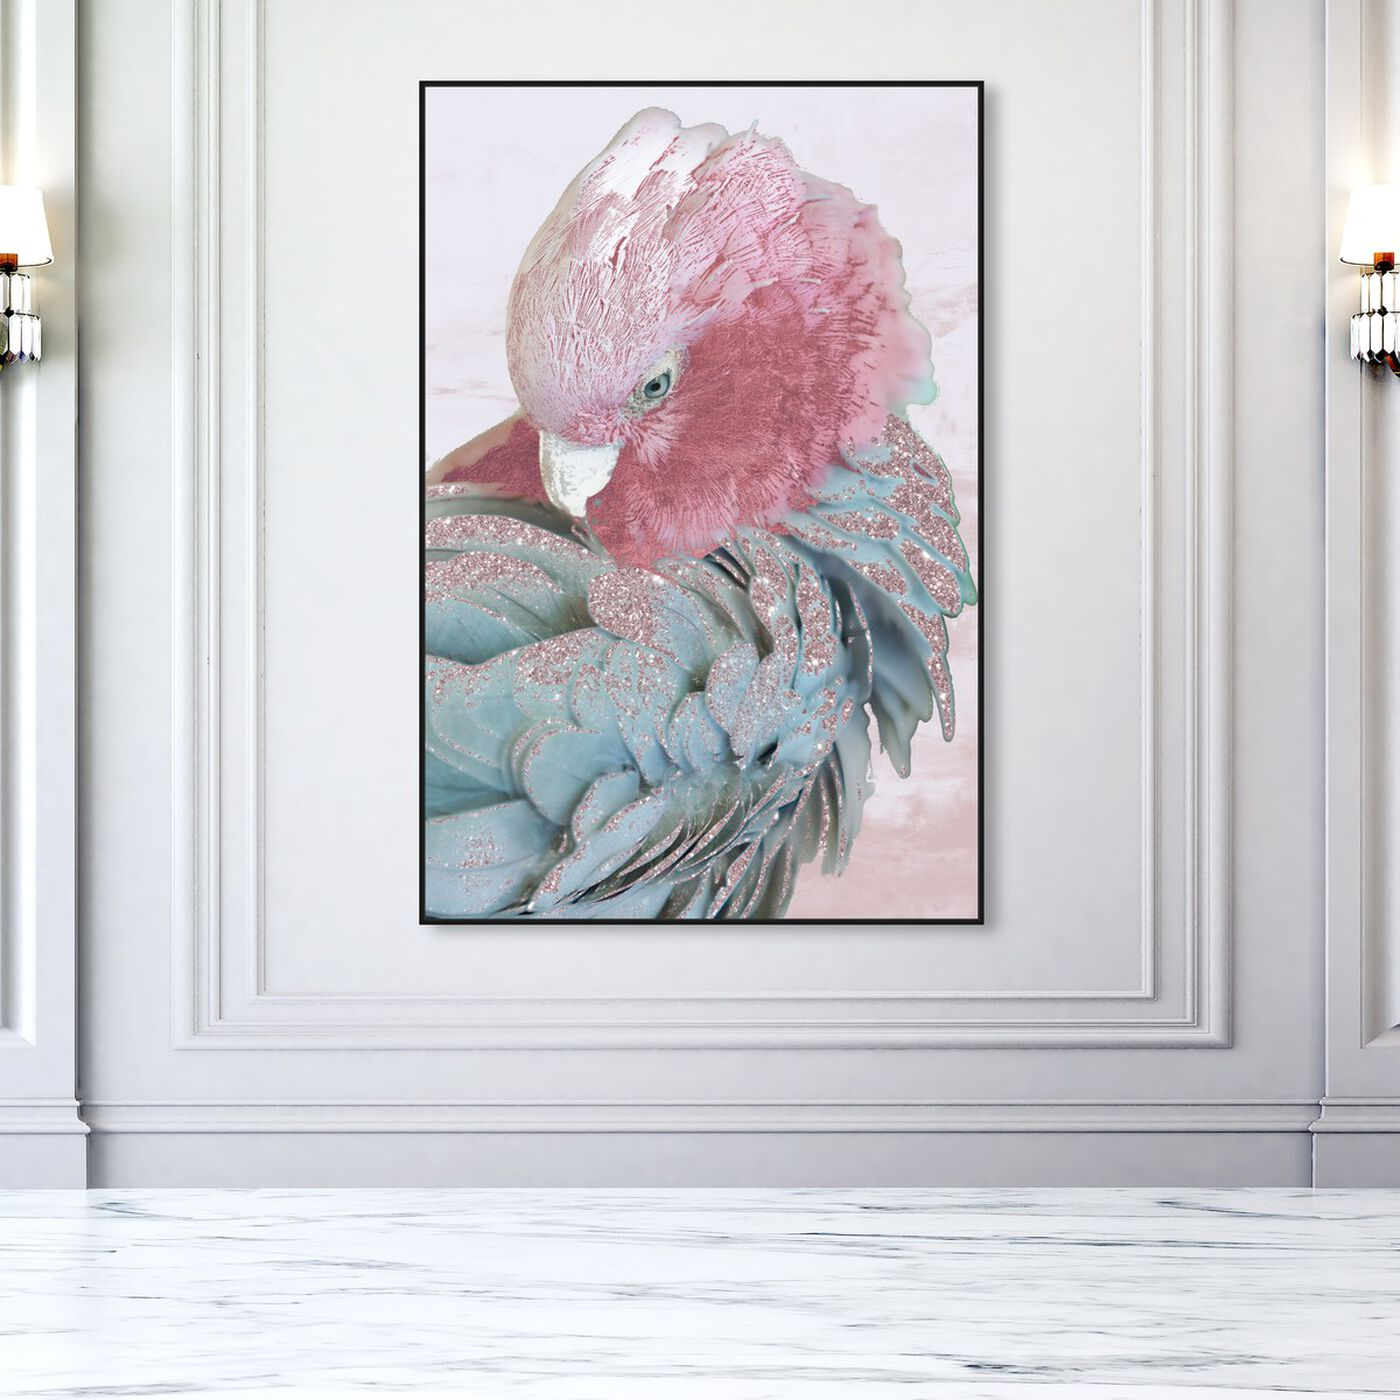 Hanging view of Cockatoo in Sydney Blush featuring animals and birds art.